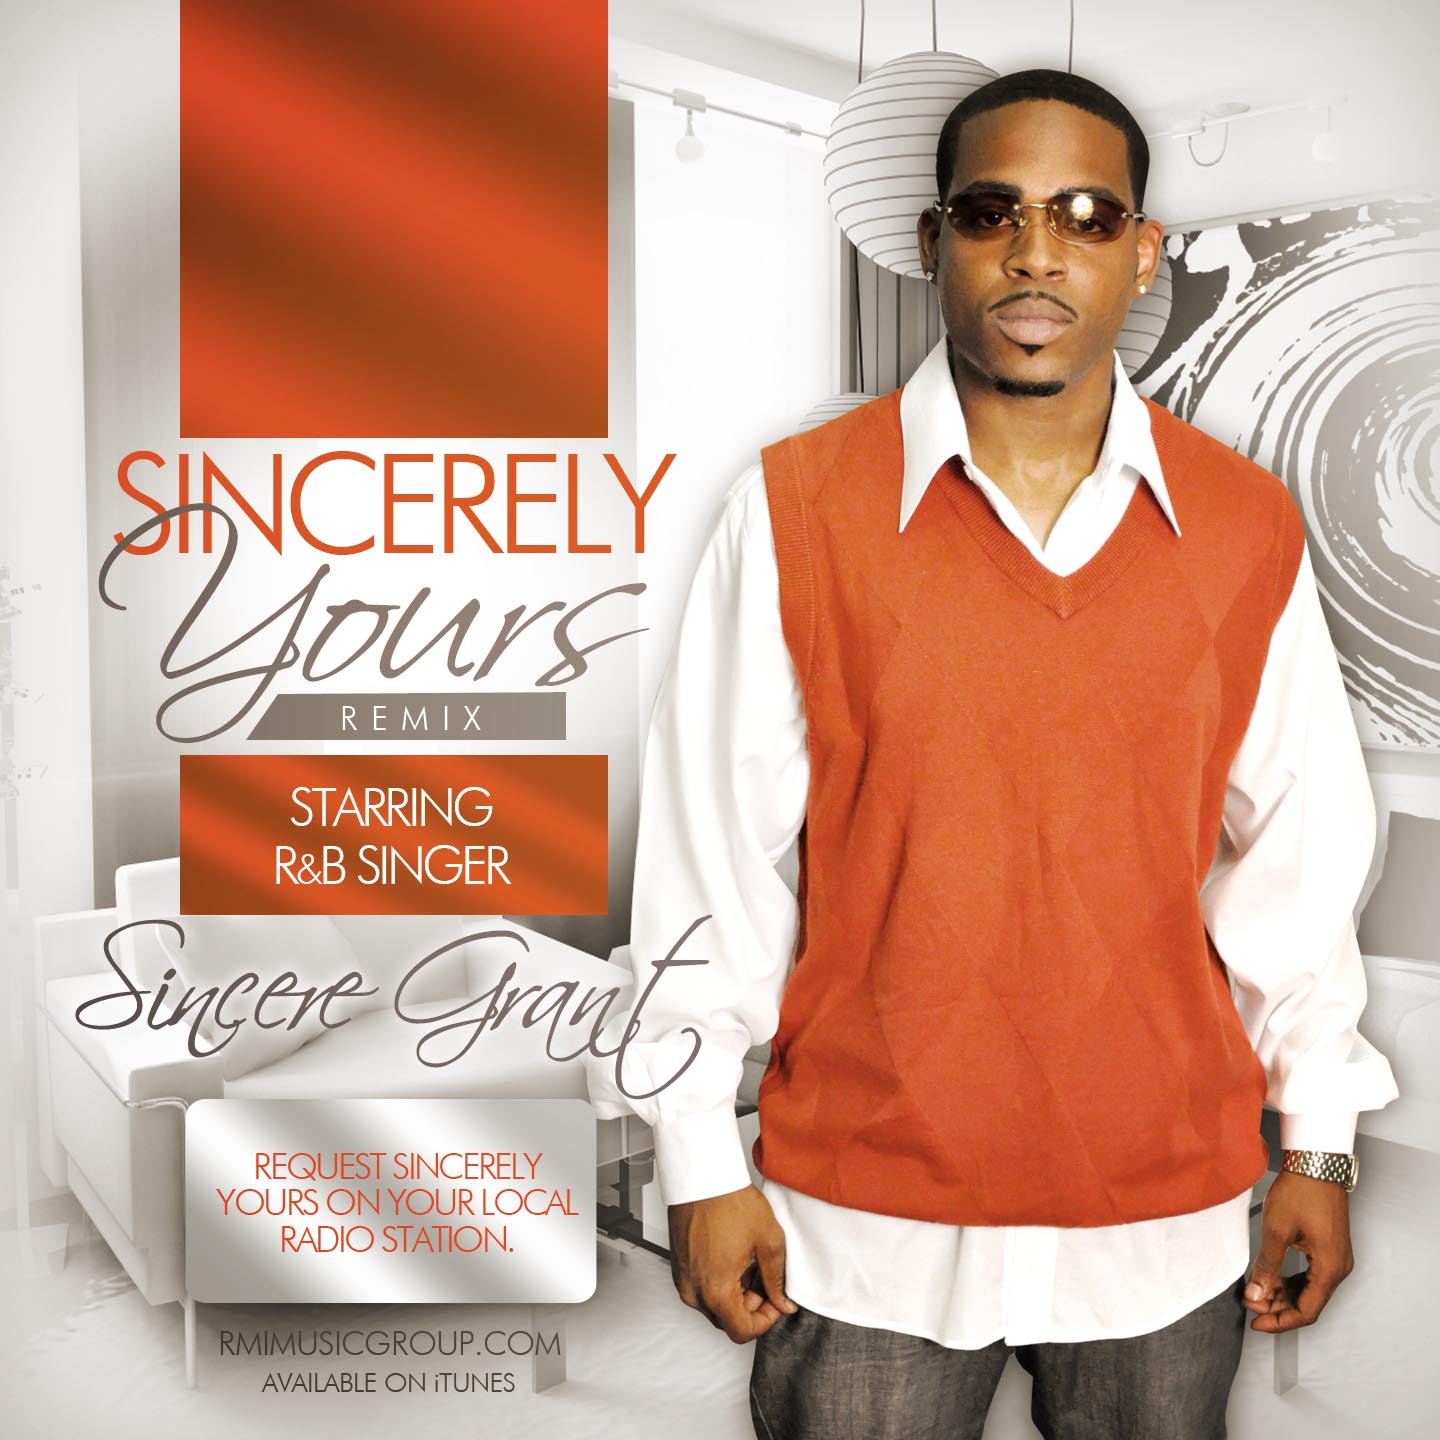 sincere-grant-sincerely-yours-small-jpg-2-jpg